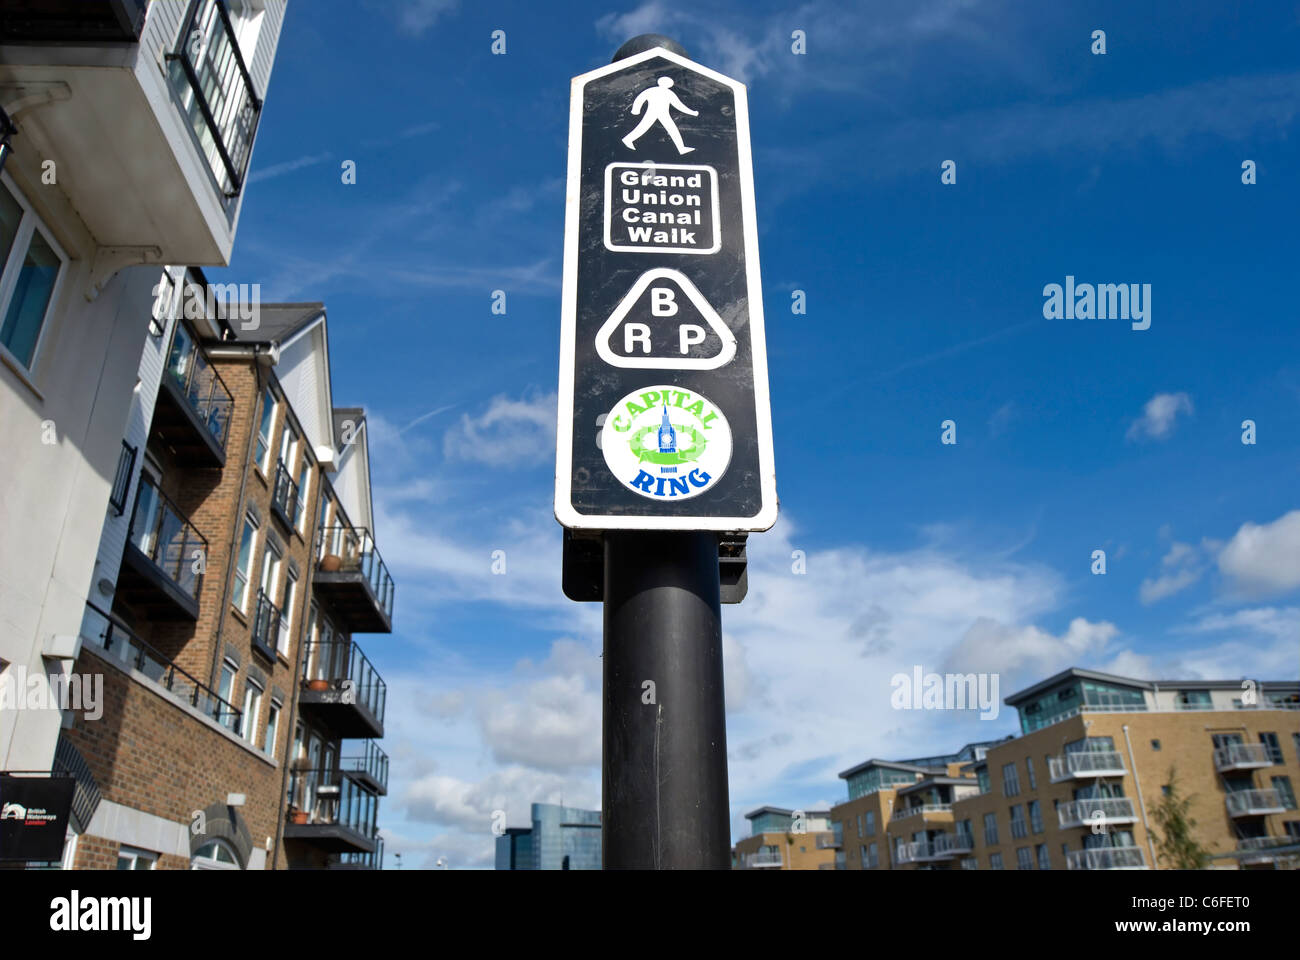 signpost showing walking routes for the grand union canal, brp, and capital ring, at brentford lock, west london, - Stock Image